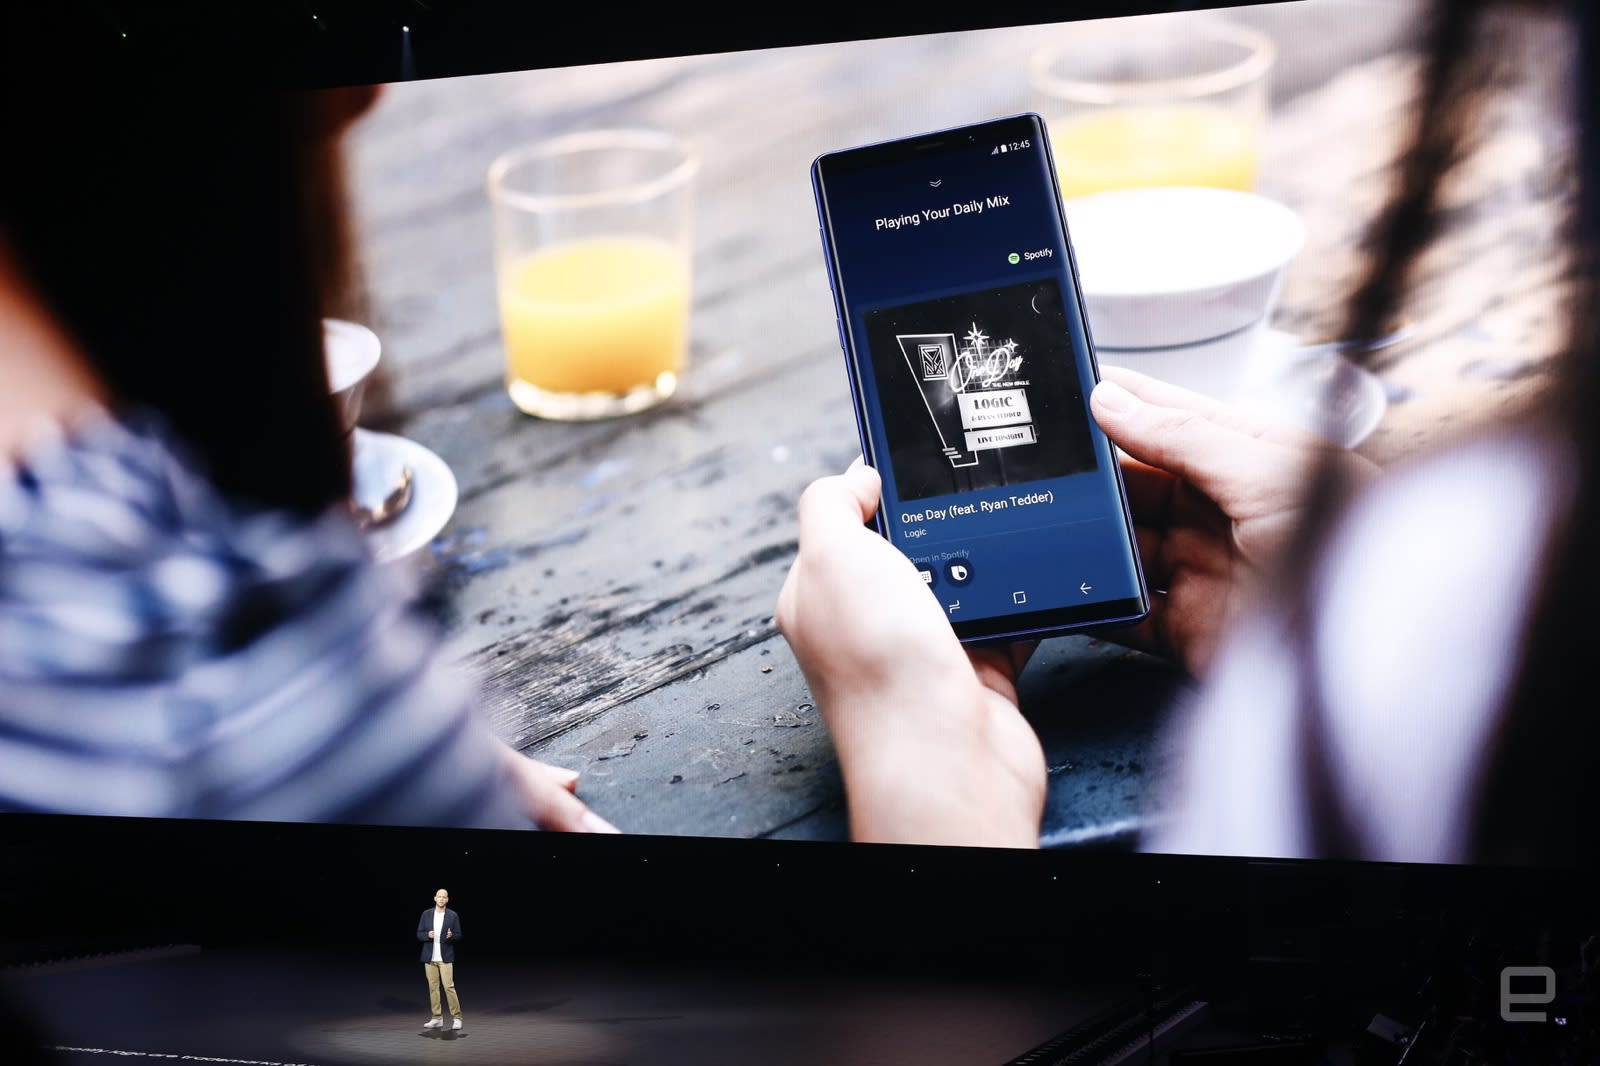 Samsung's smart home devices can pick up Spotify streams